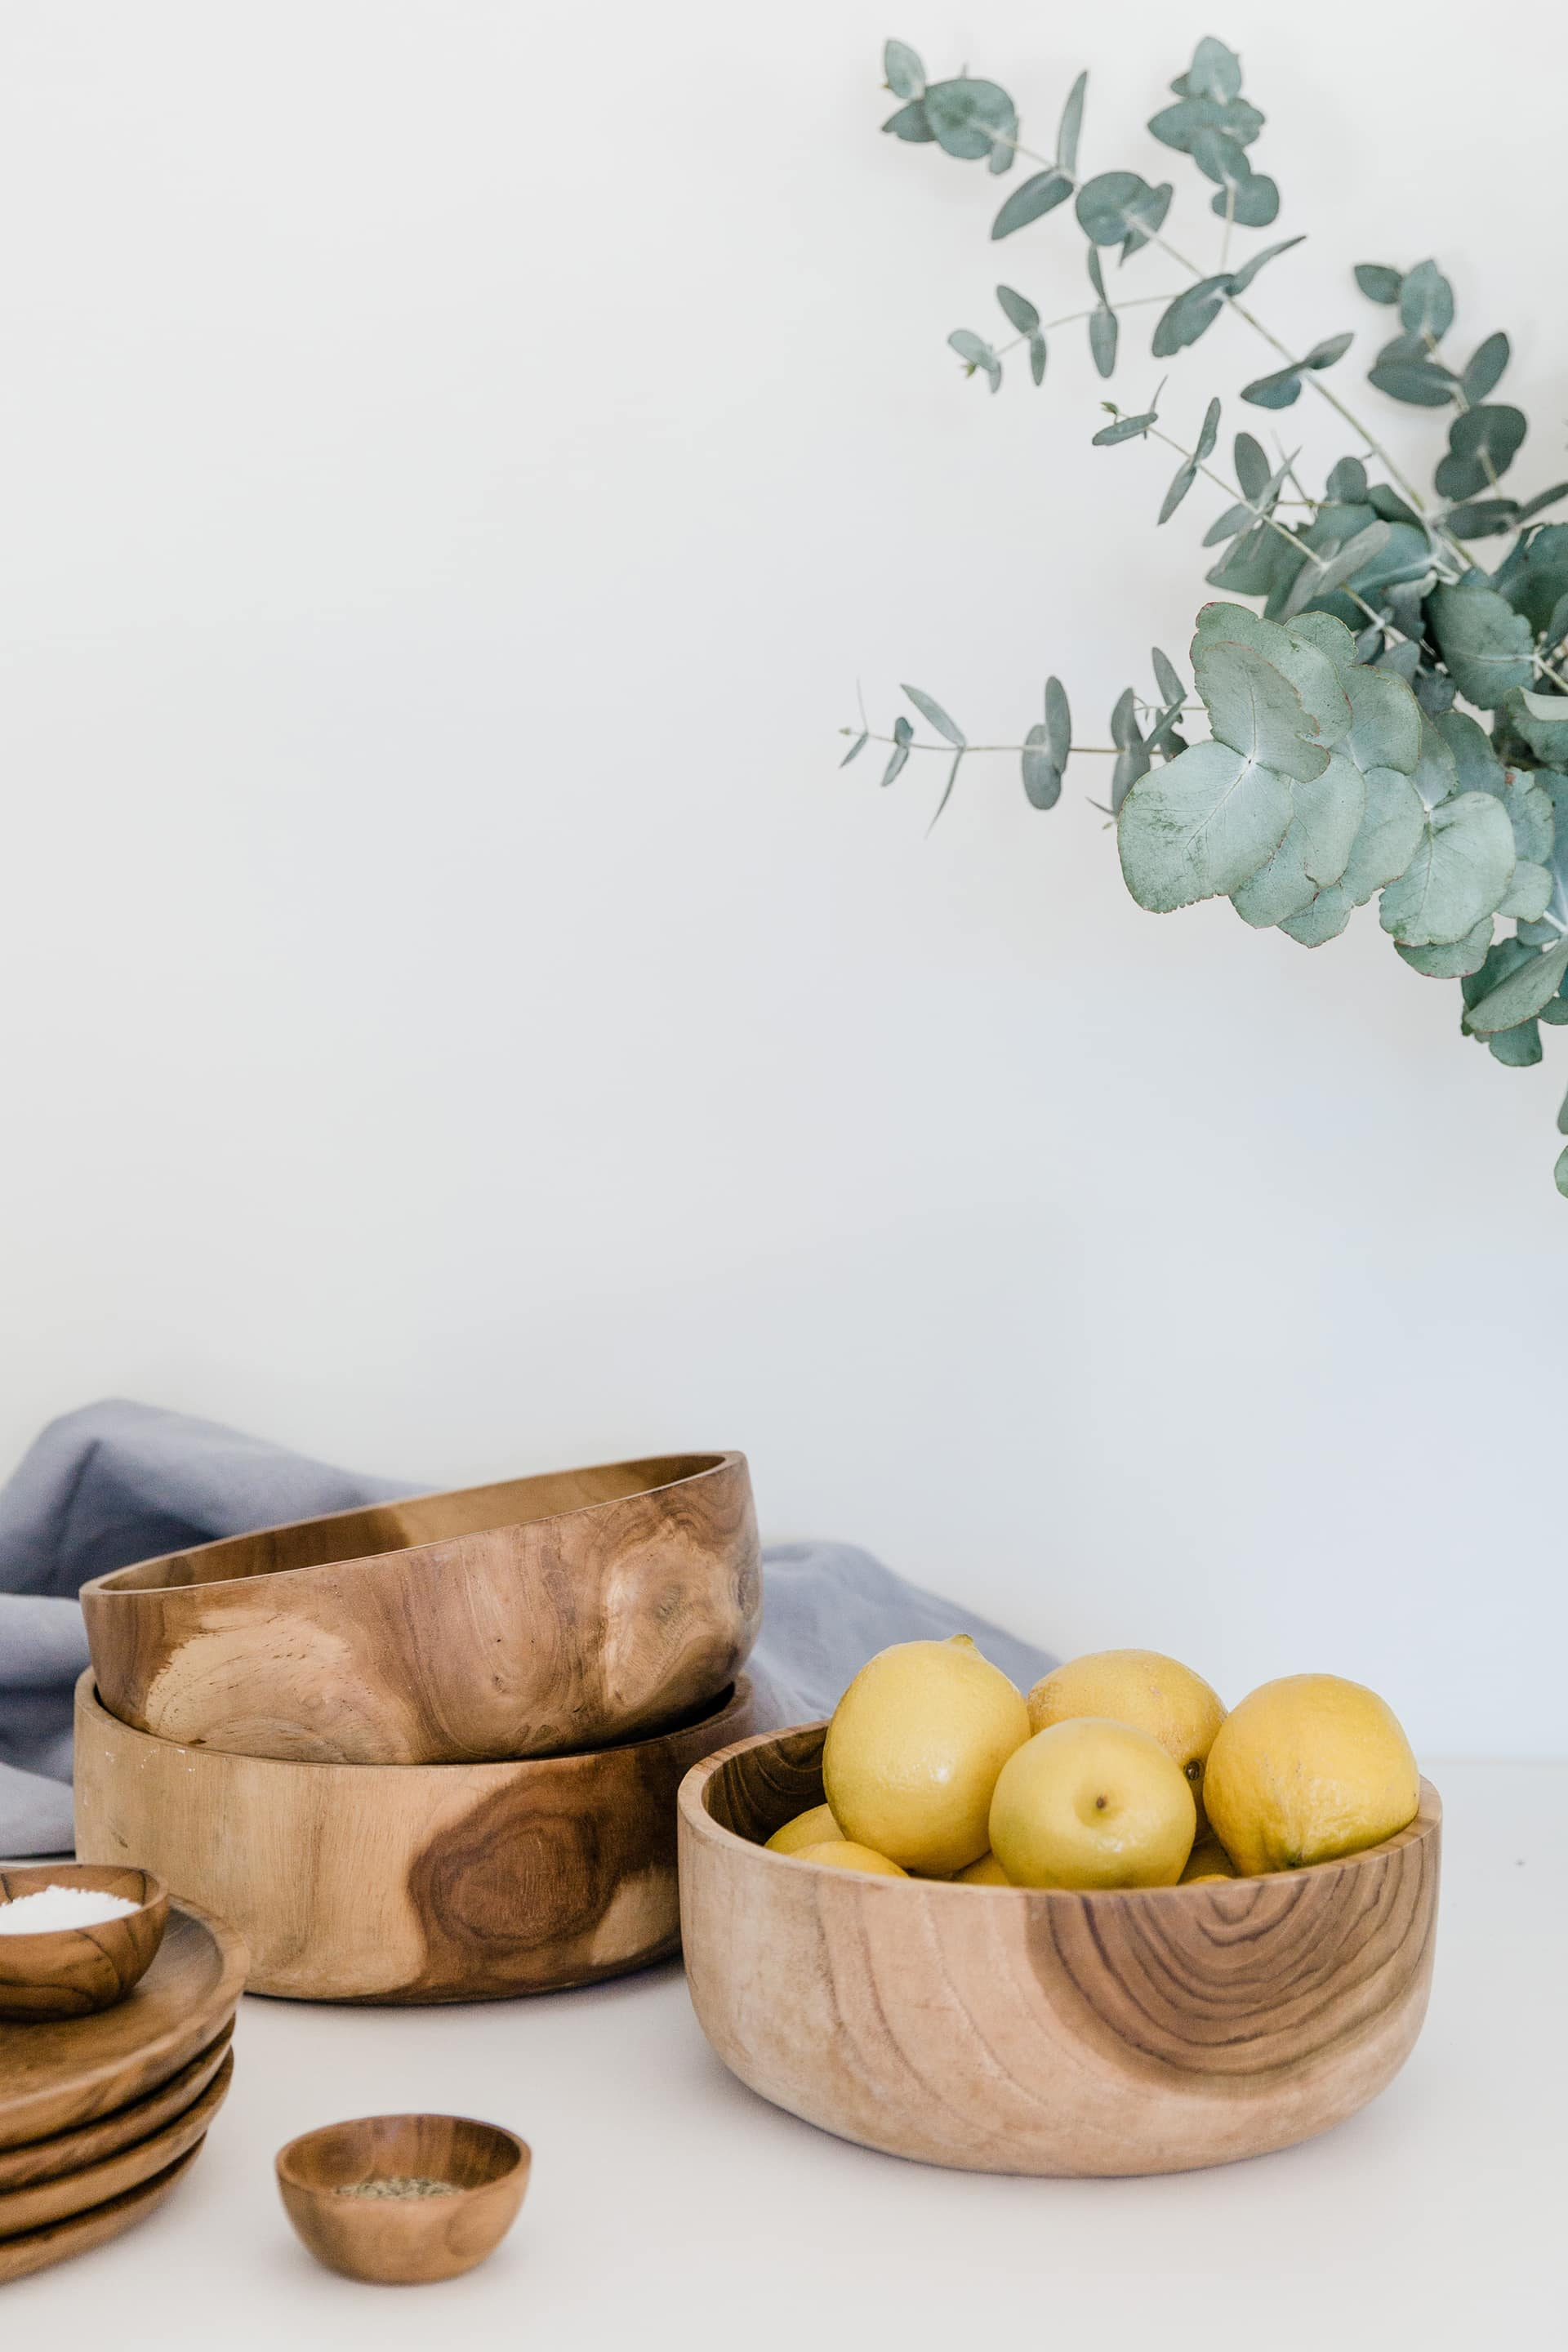 southbound round wooden bowls in kitchen with lemons